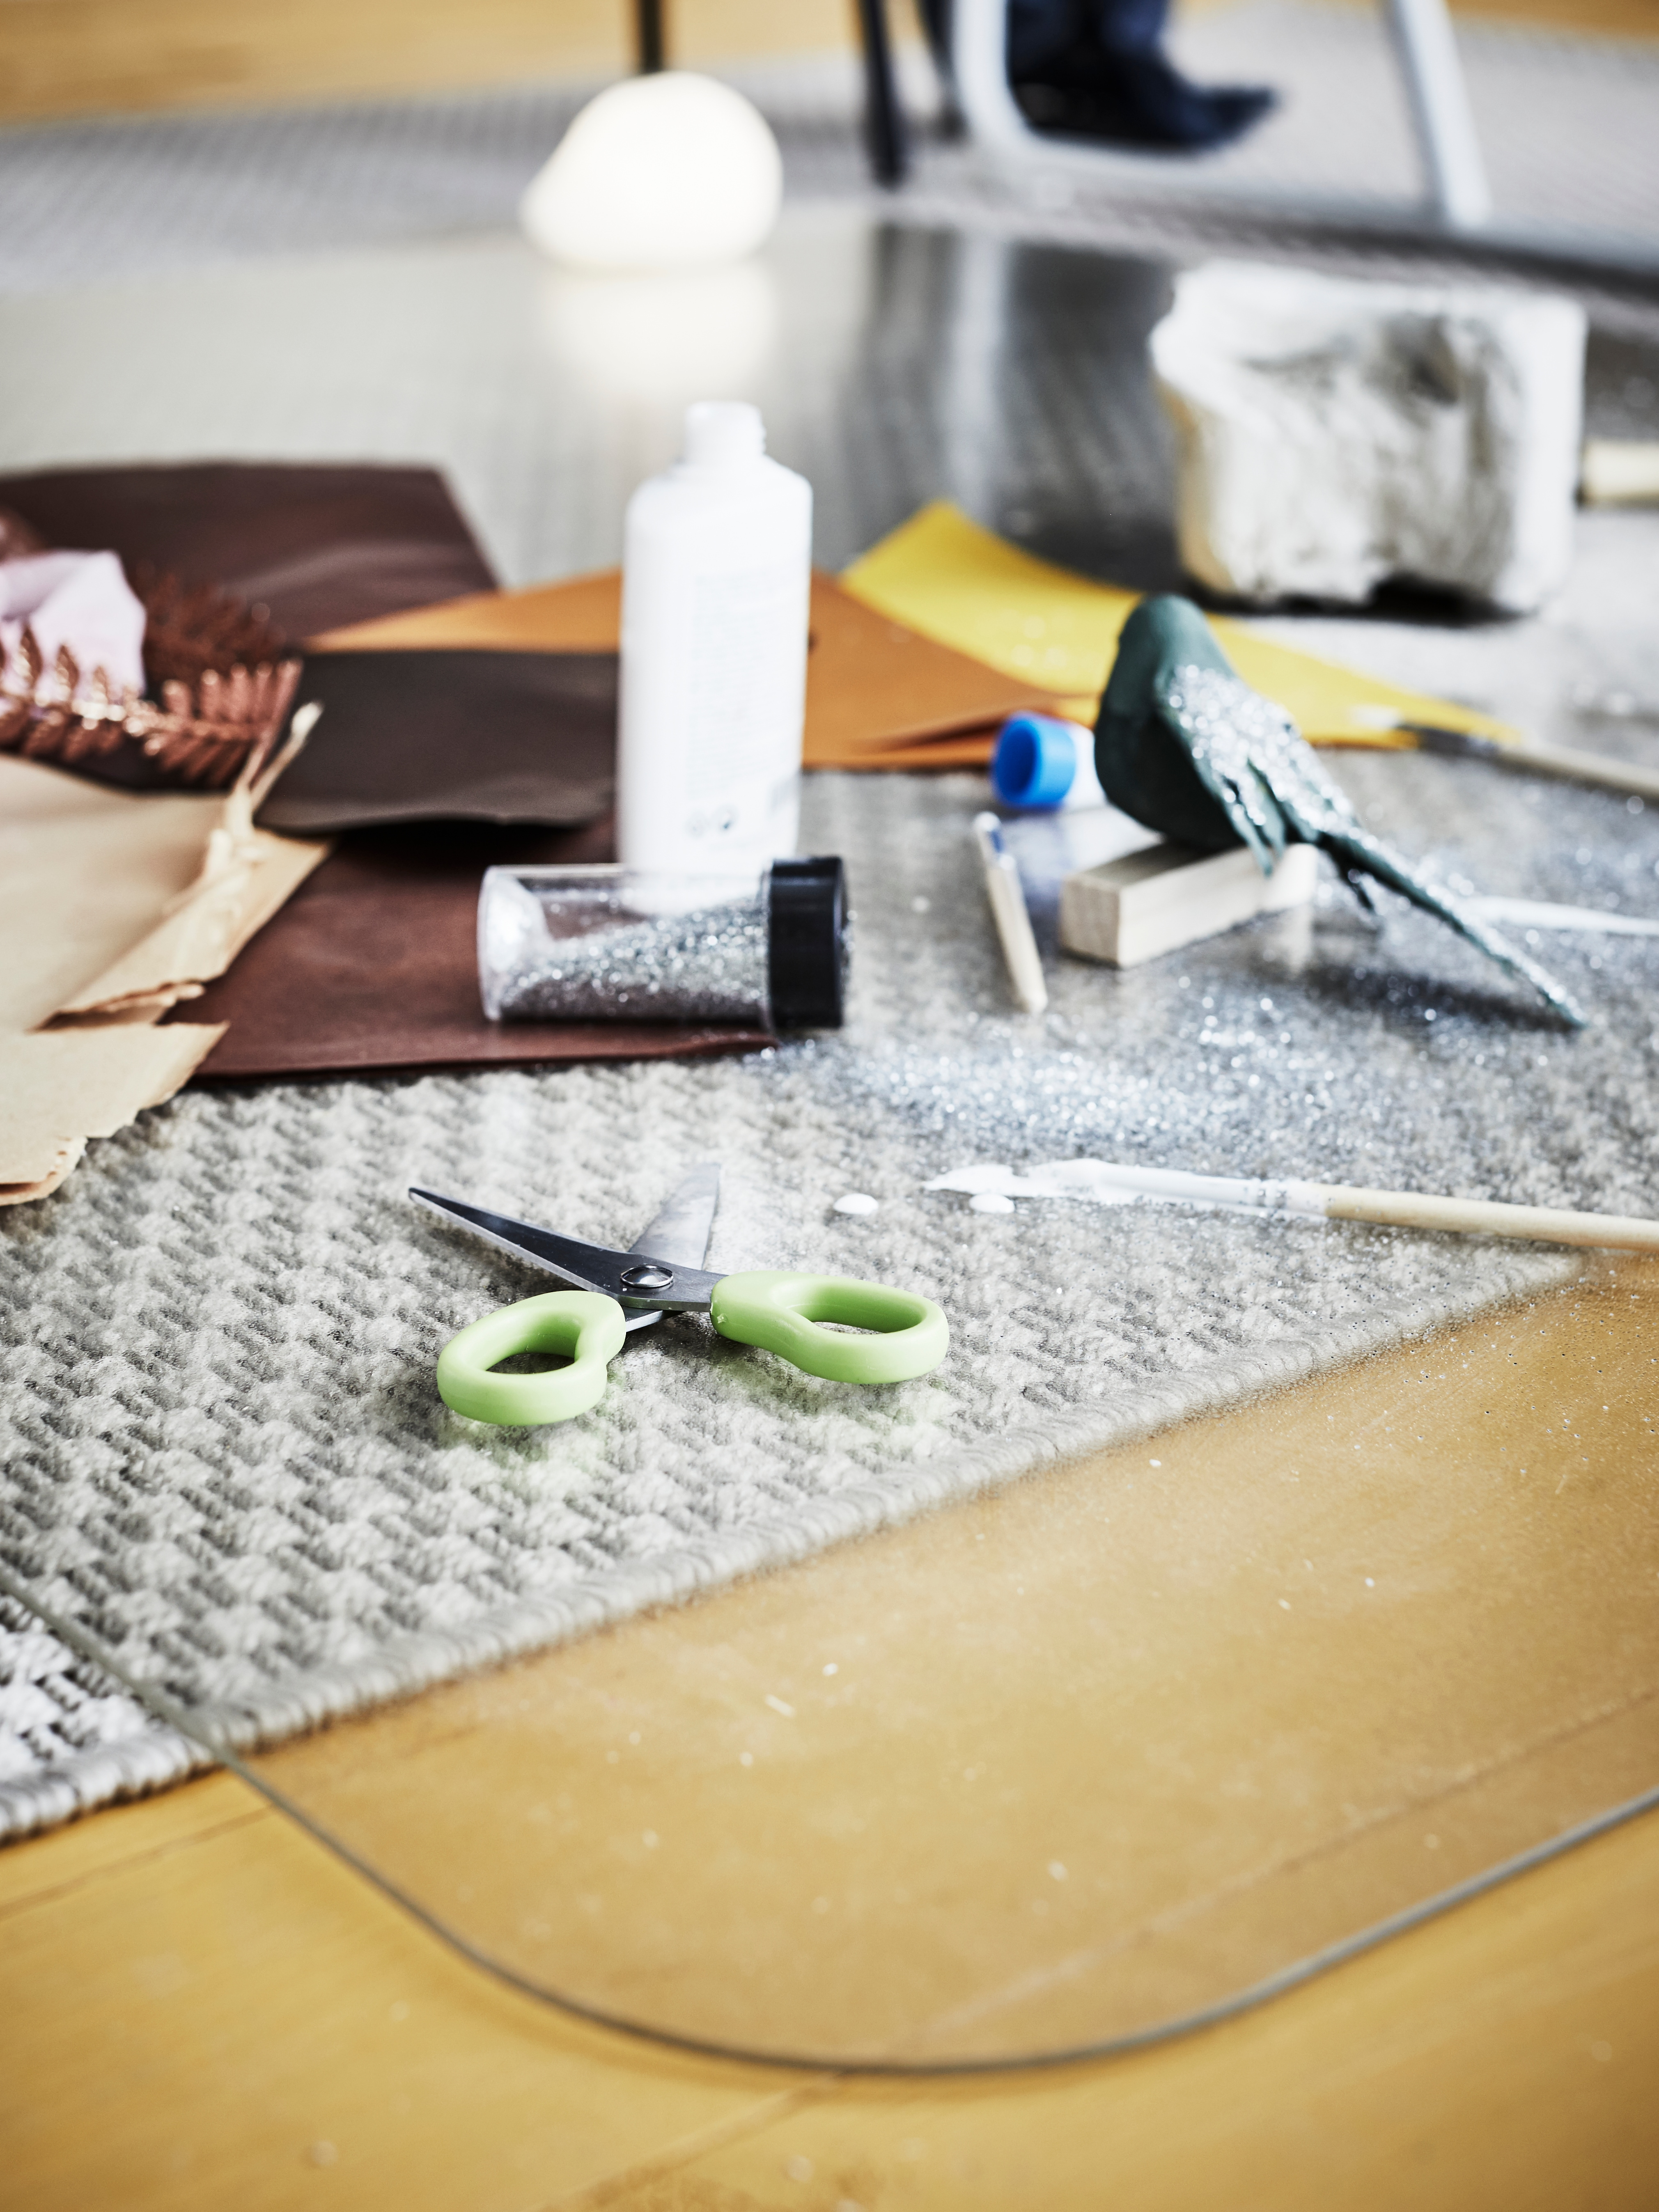 Drawing, painting and art supplies strewn across a plastic, transparent KOLON floor protector over a rug on a wooden floor.